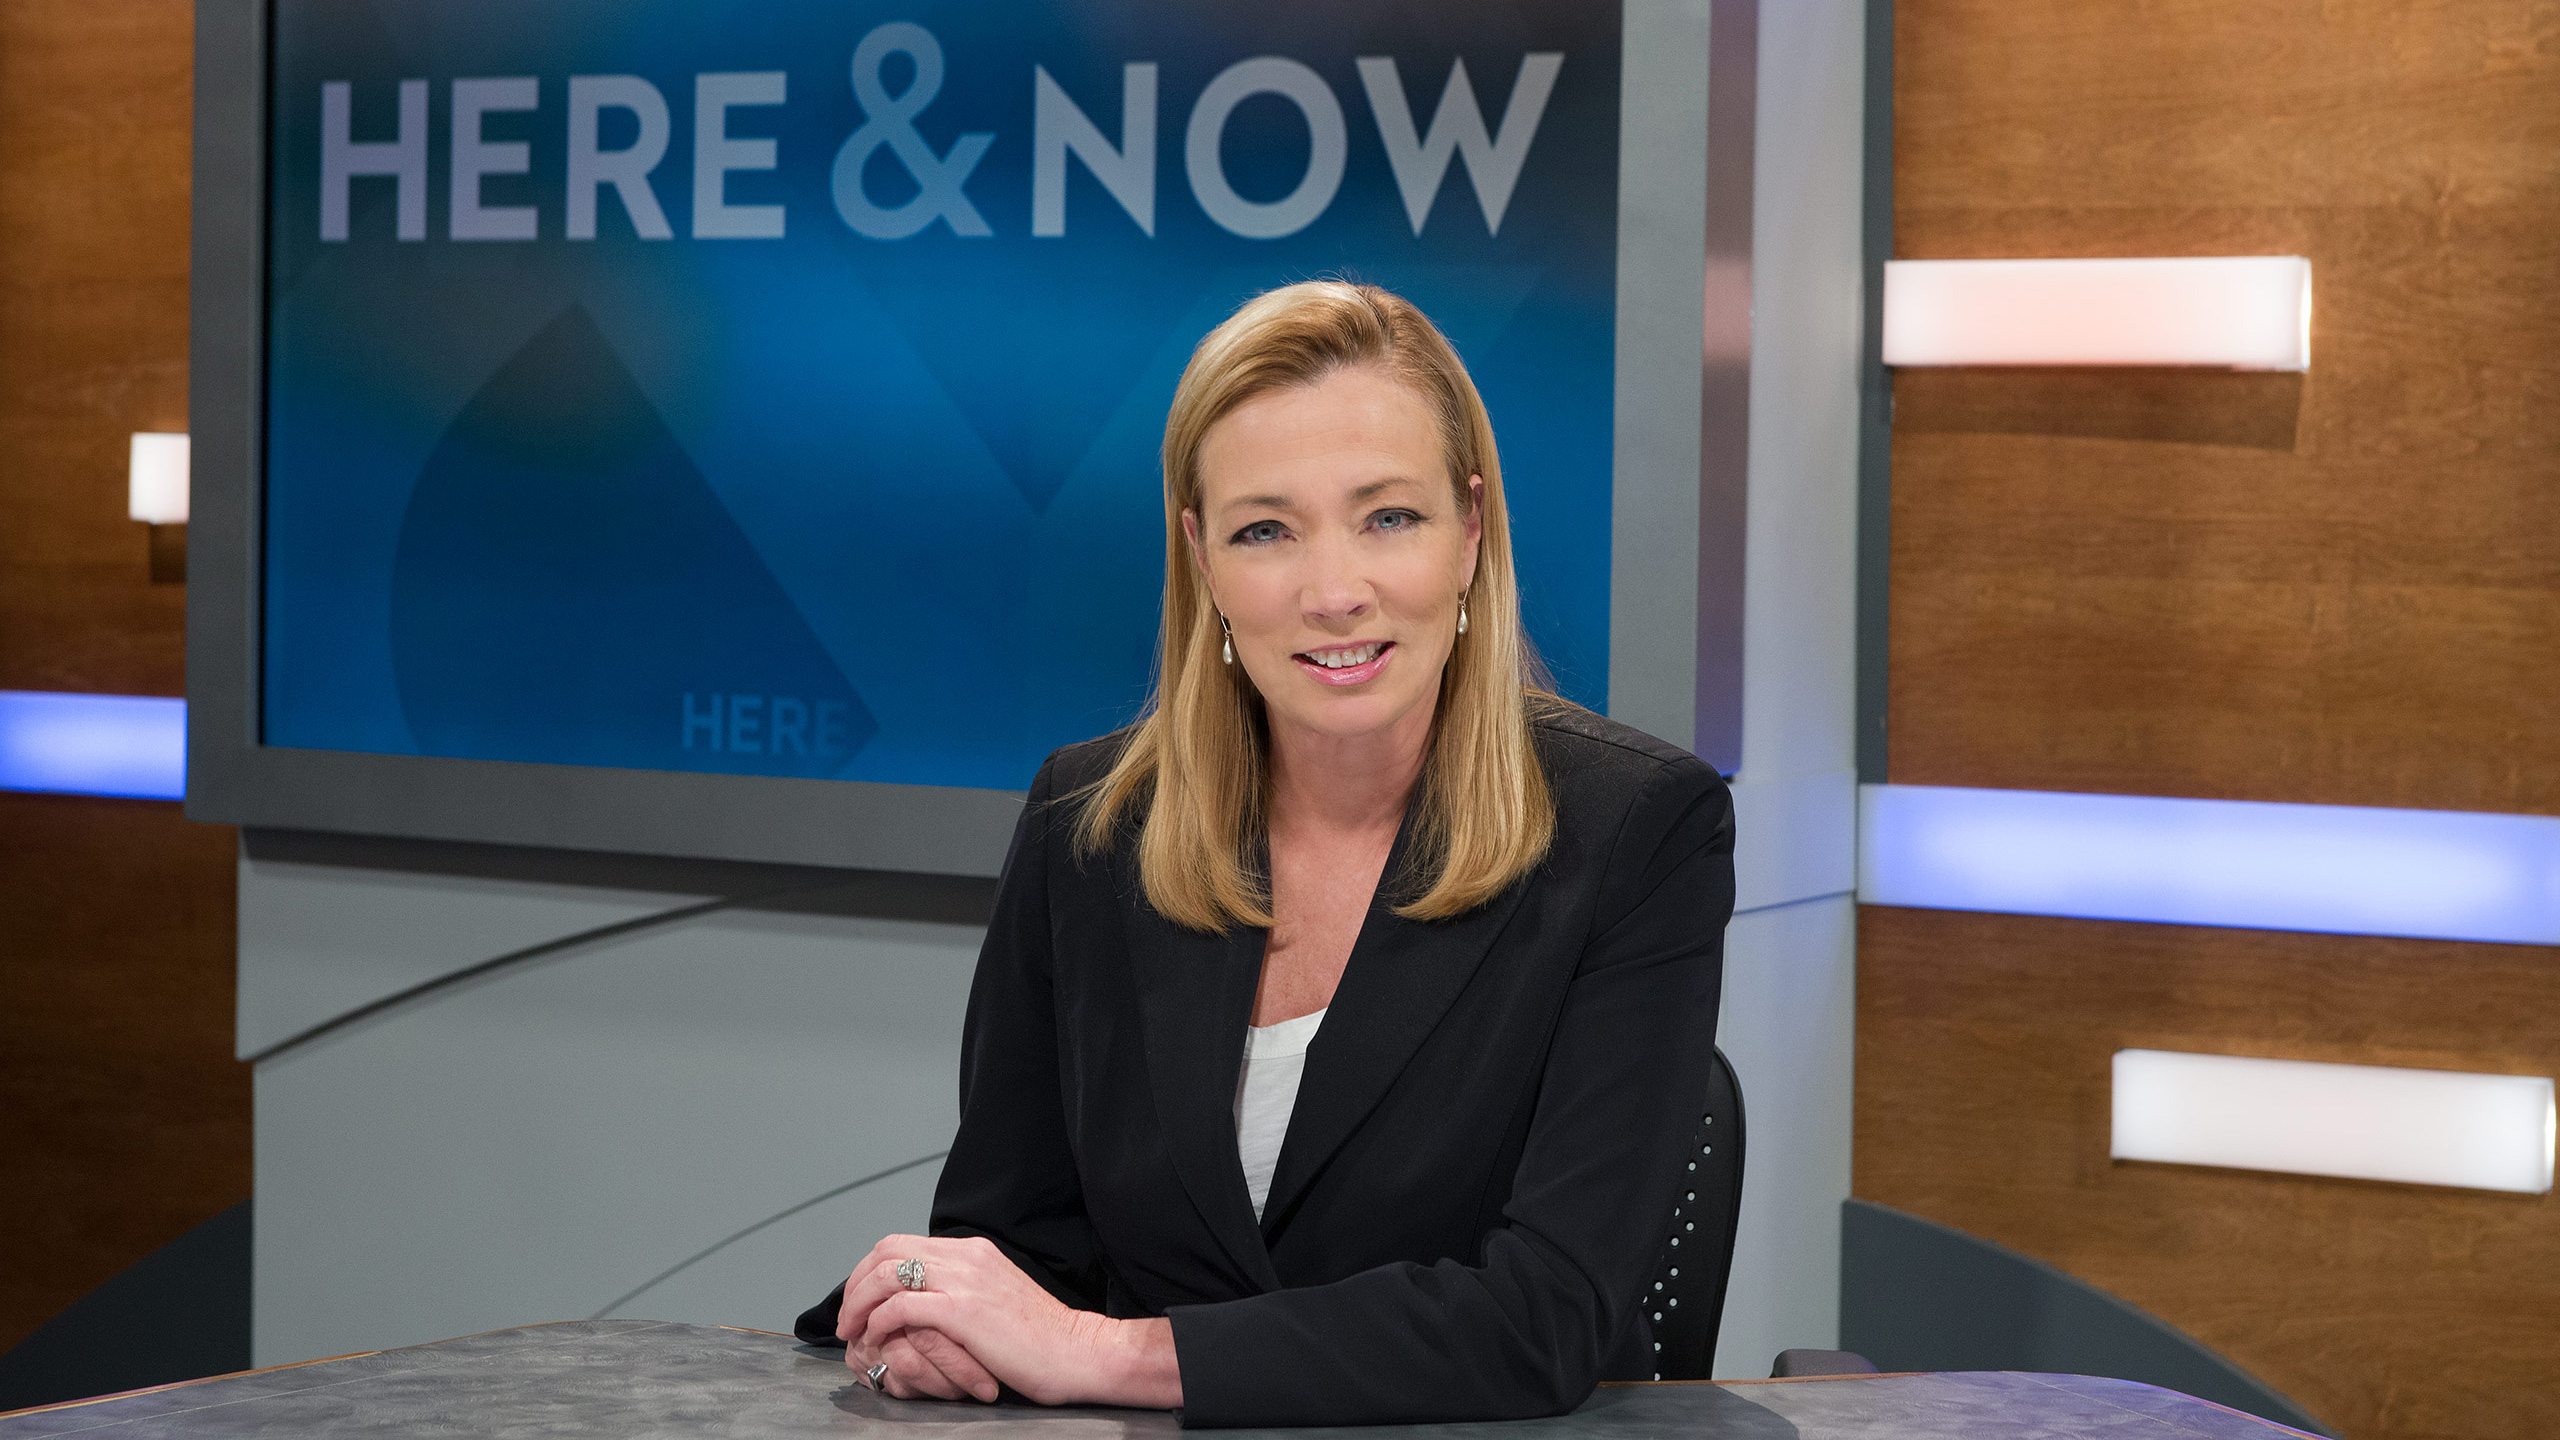 Here & Now anchor Frederica Freyberg,